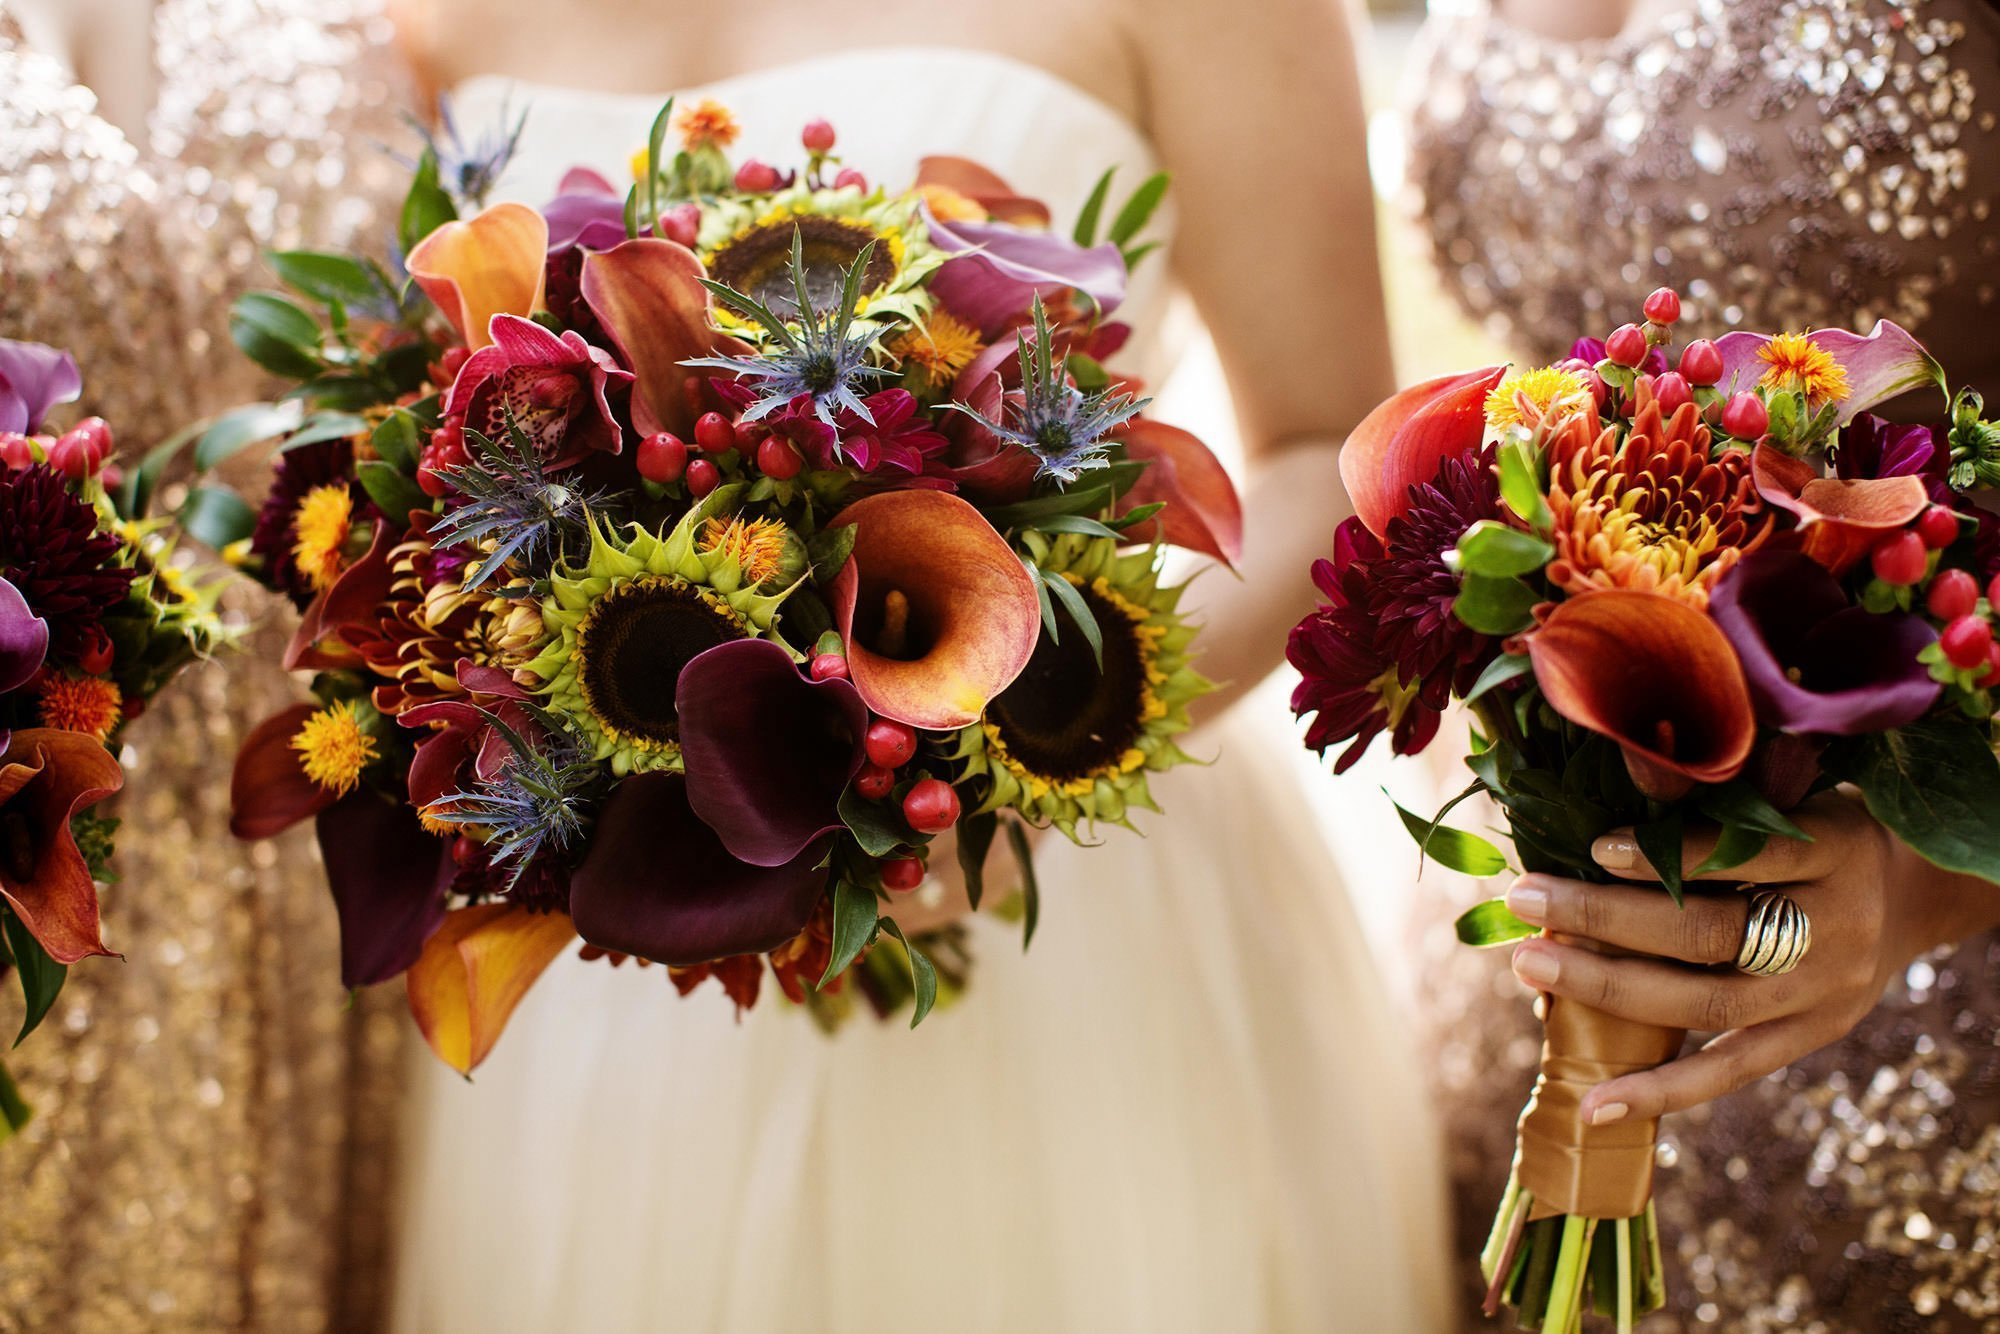 A detail of the bridal party bouquets.